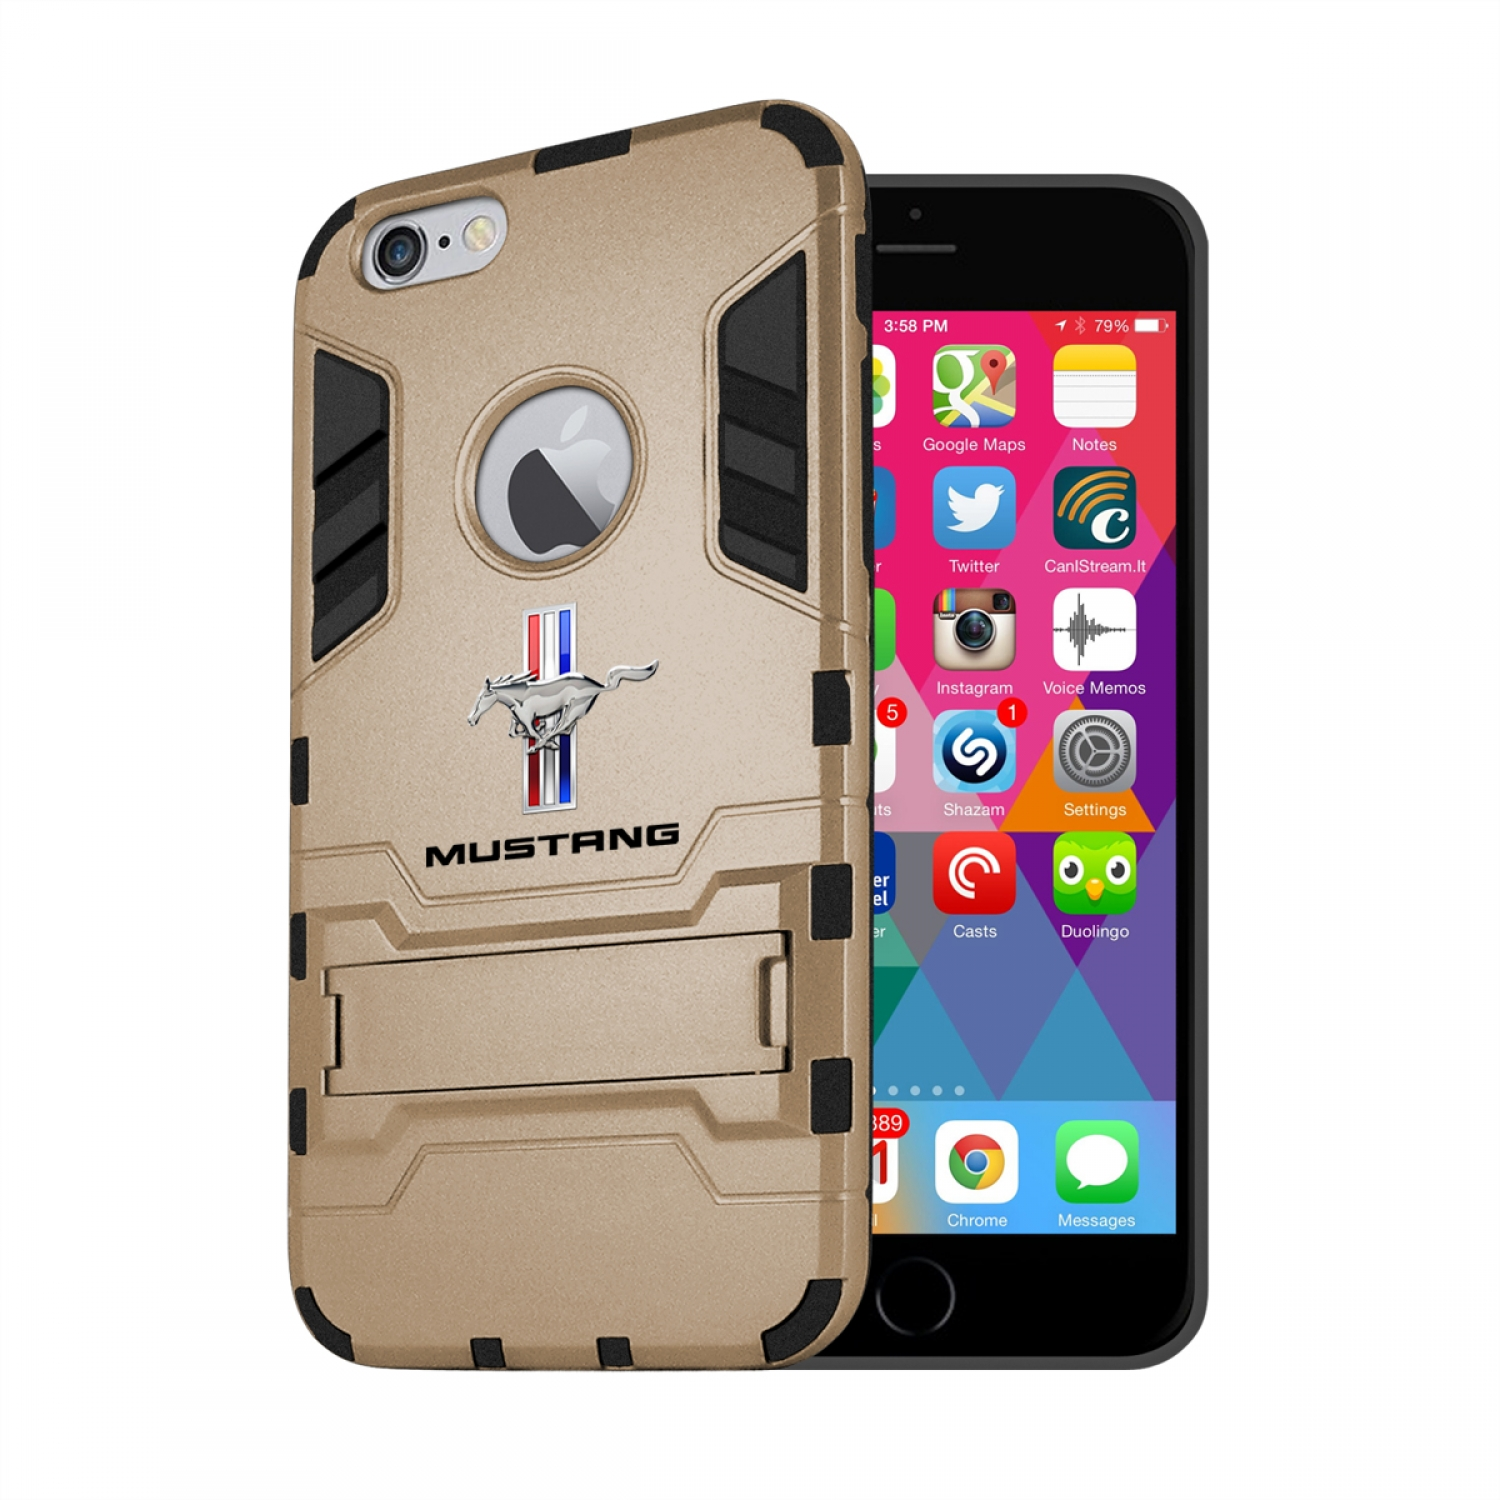 Ford Mustang Tri-Bar iPhone 6 6s Shockproof TPU ABS Hybrid Golden Phone Case